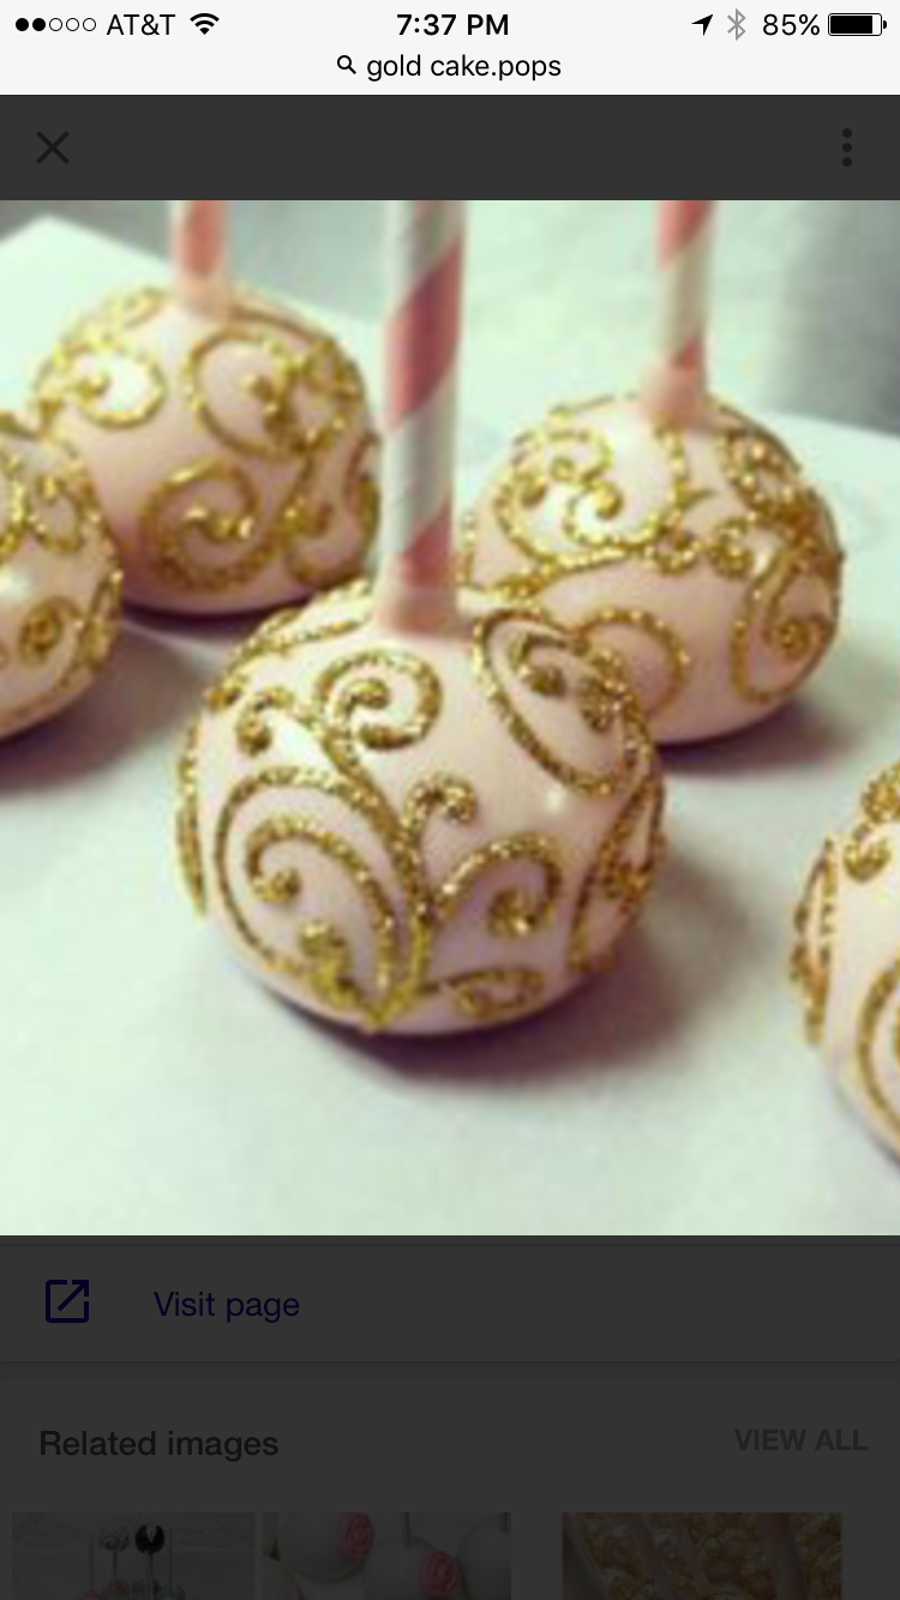 Decorating Cake Pops With Glitter : Glitter Cake Pops - CakeCentral.com